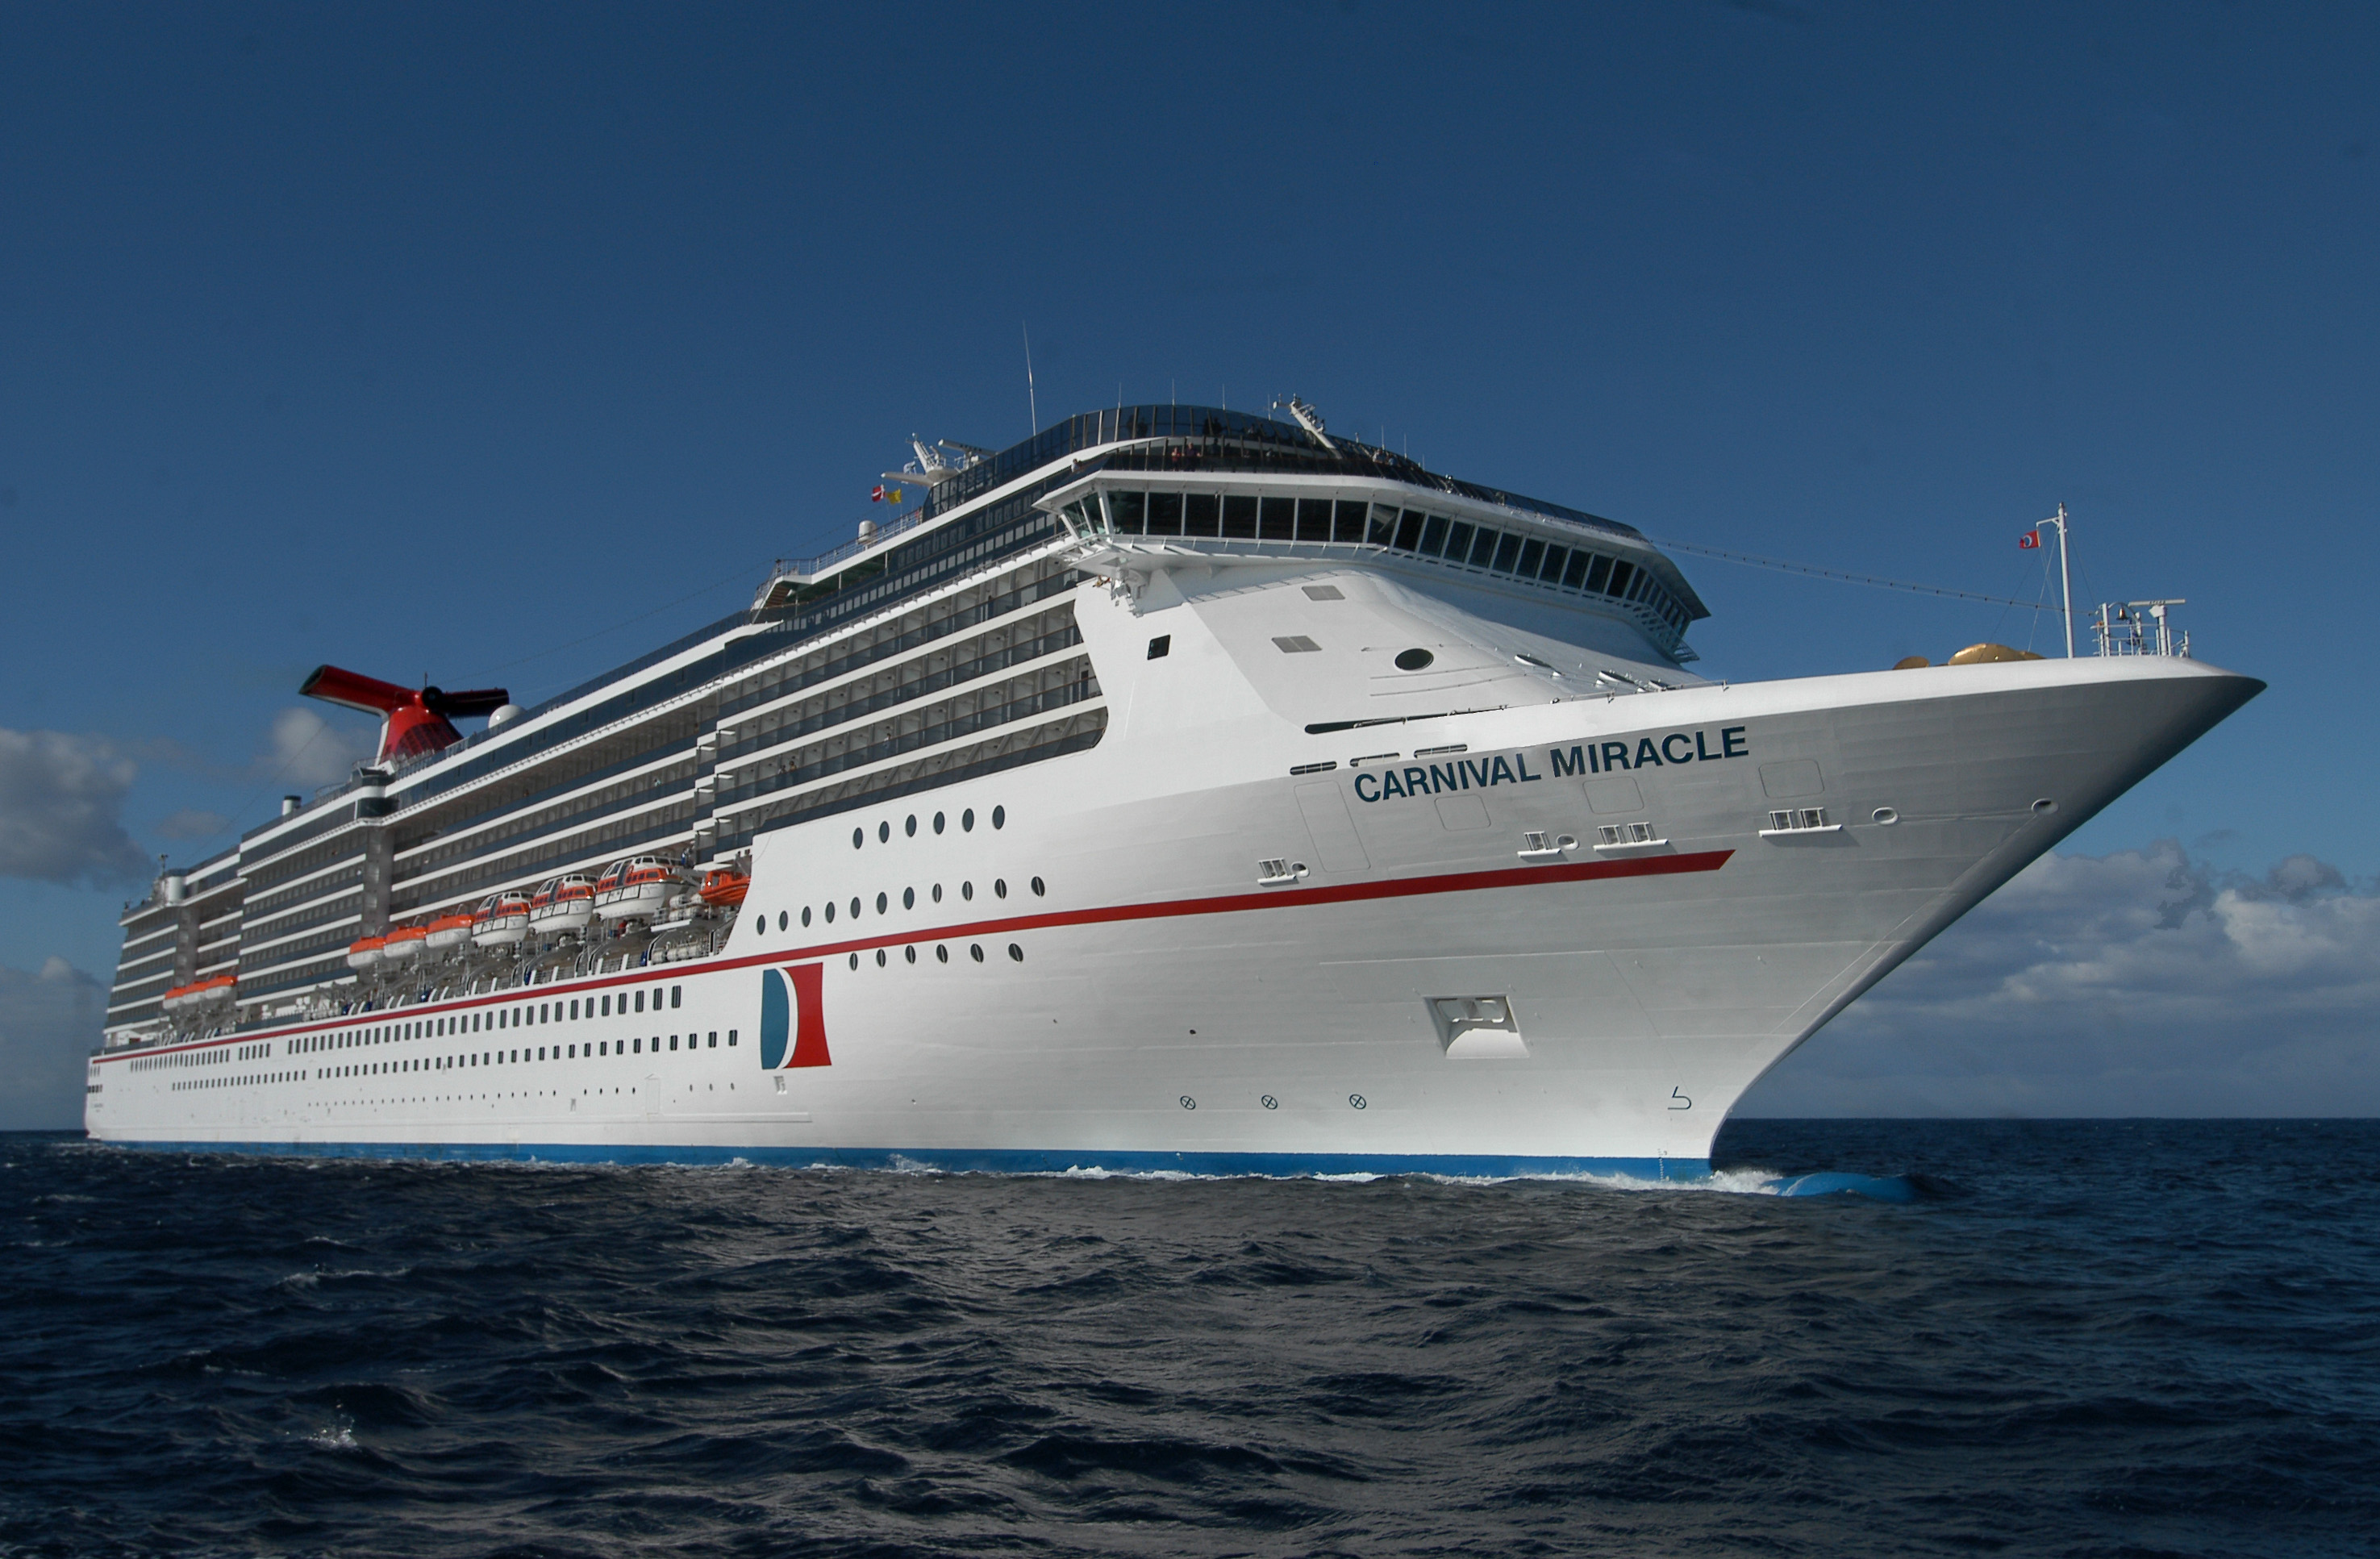 Carnival Miracle Featured in Science Channel's New Series 'How to Build…Everything'